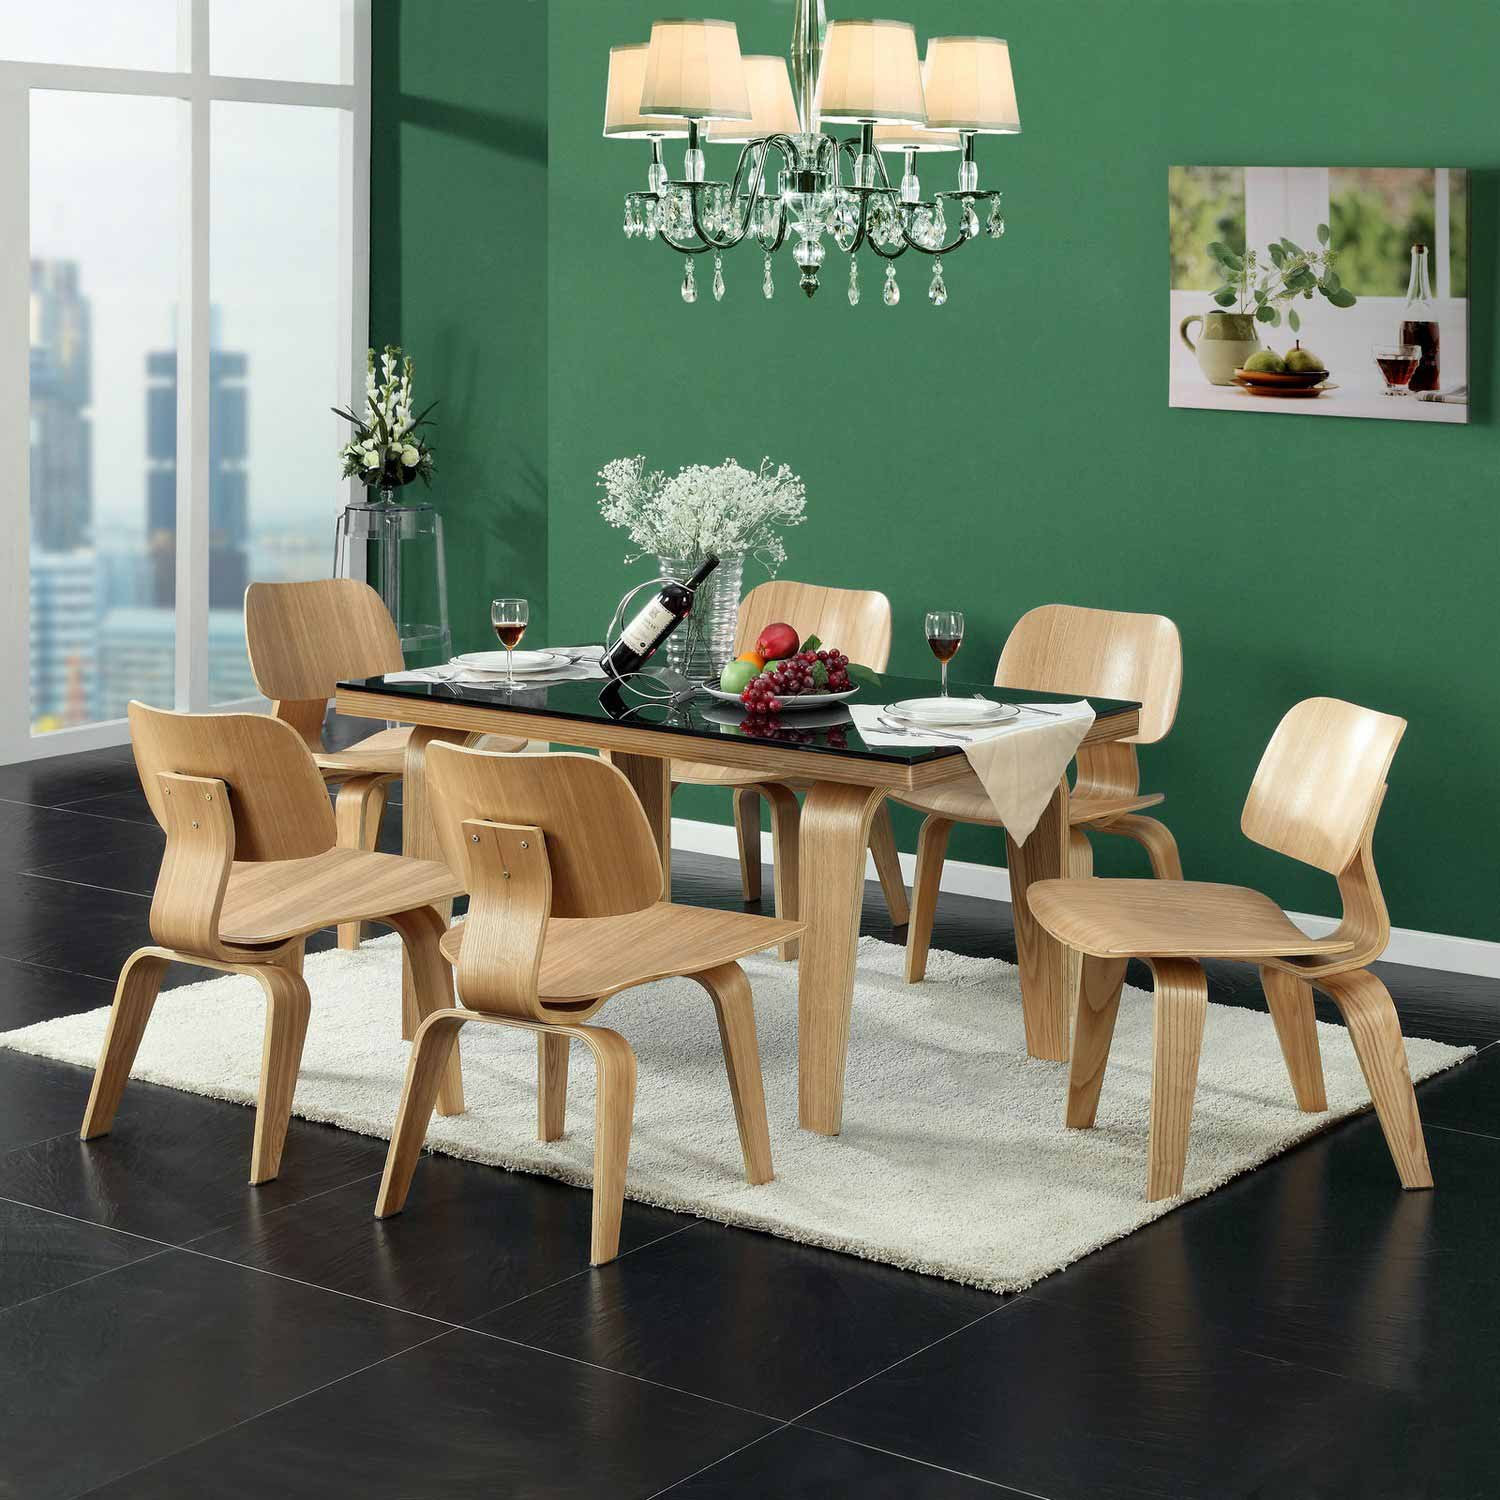 Modway Fathom Dining Side Chair - Natural